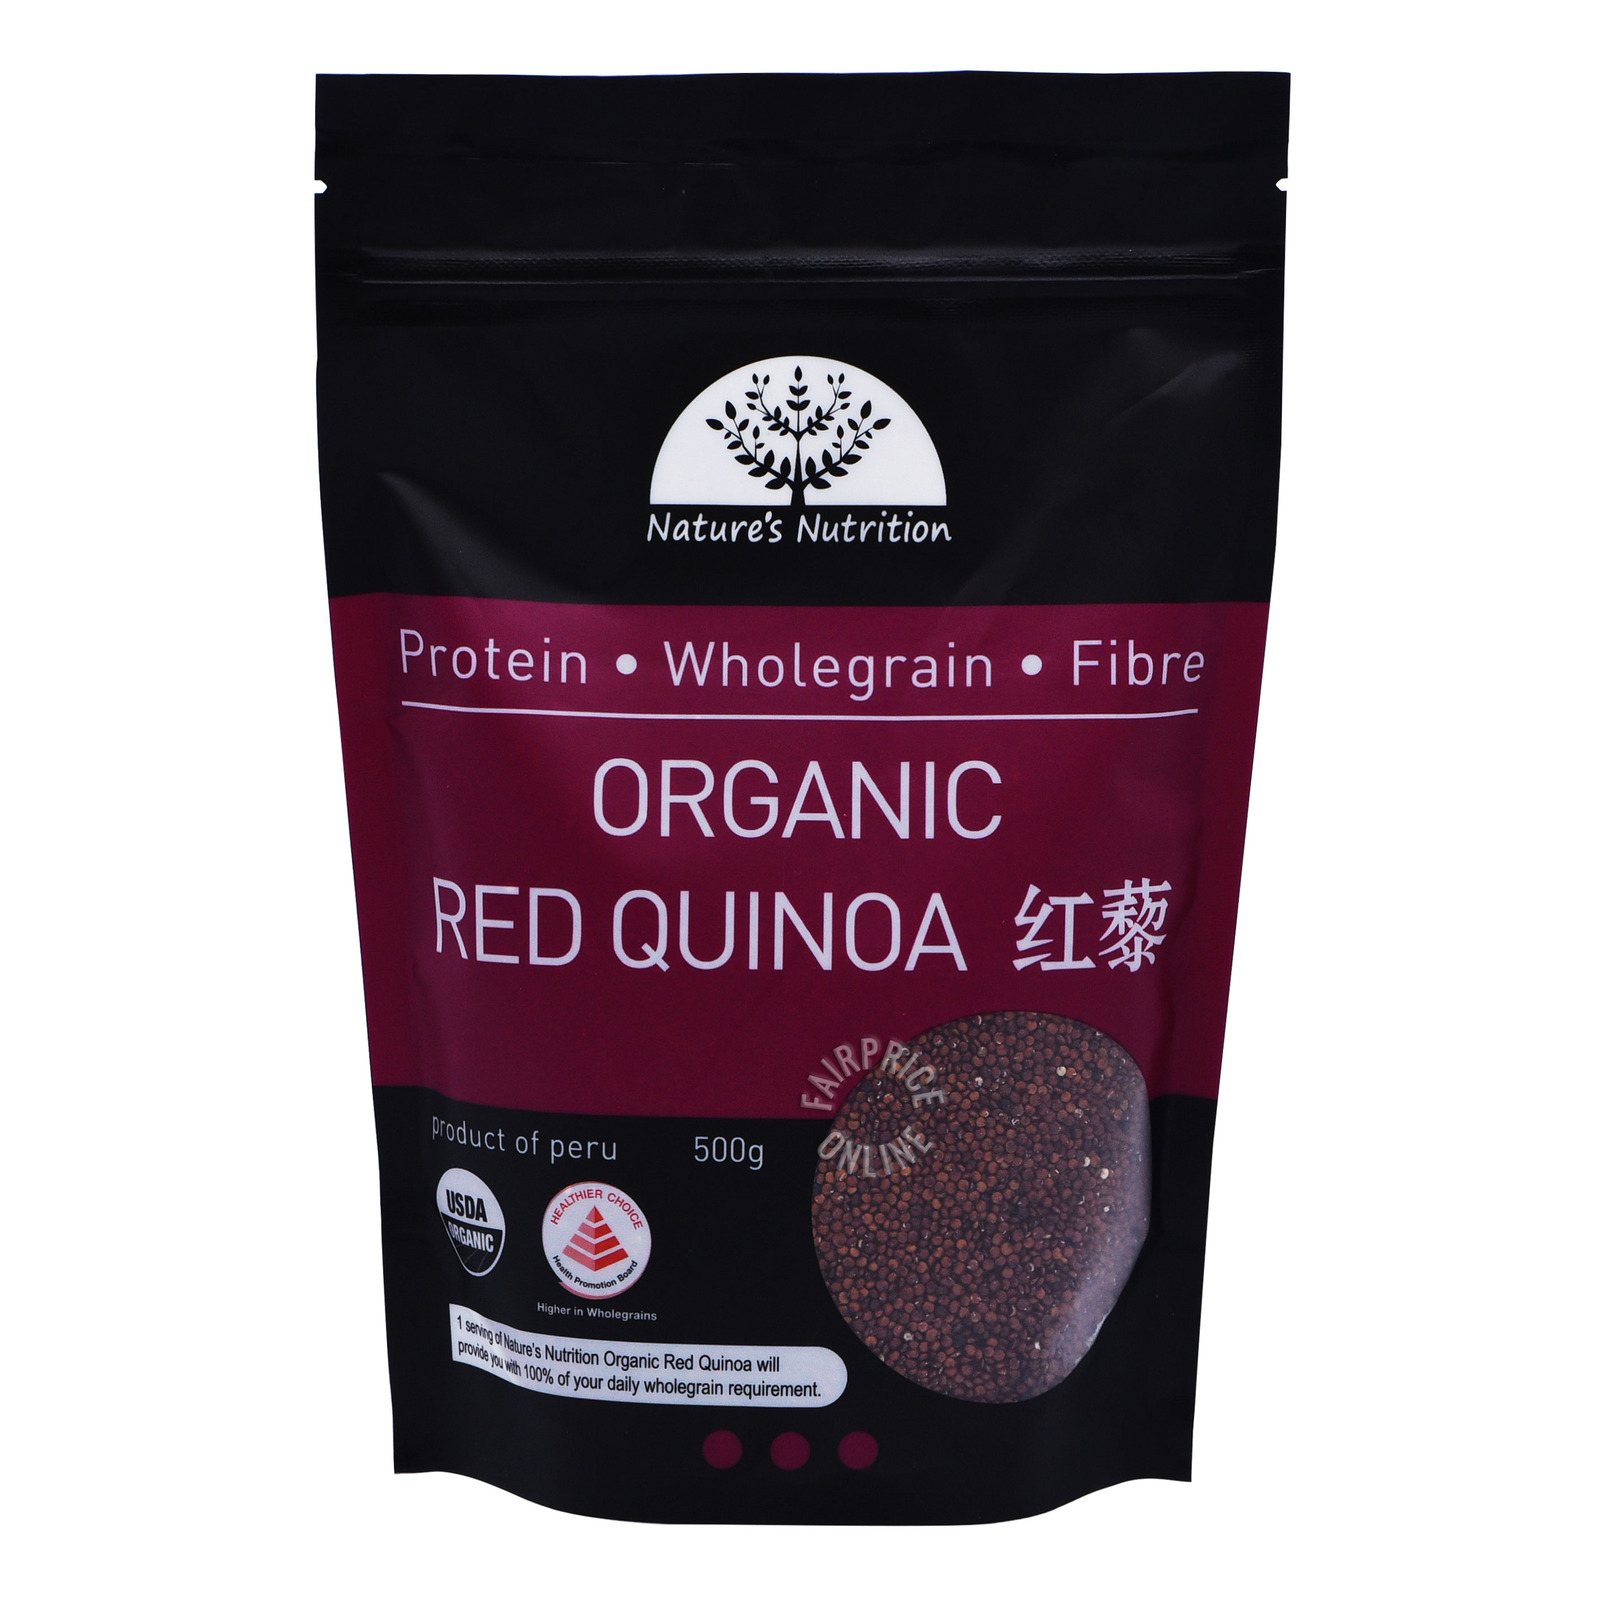 Nature's Nutrition Organic Red Quinoa